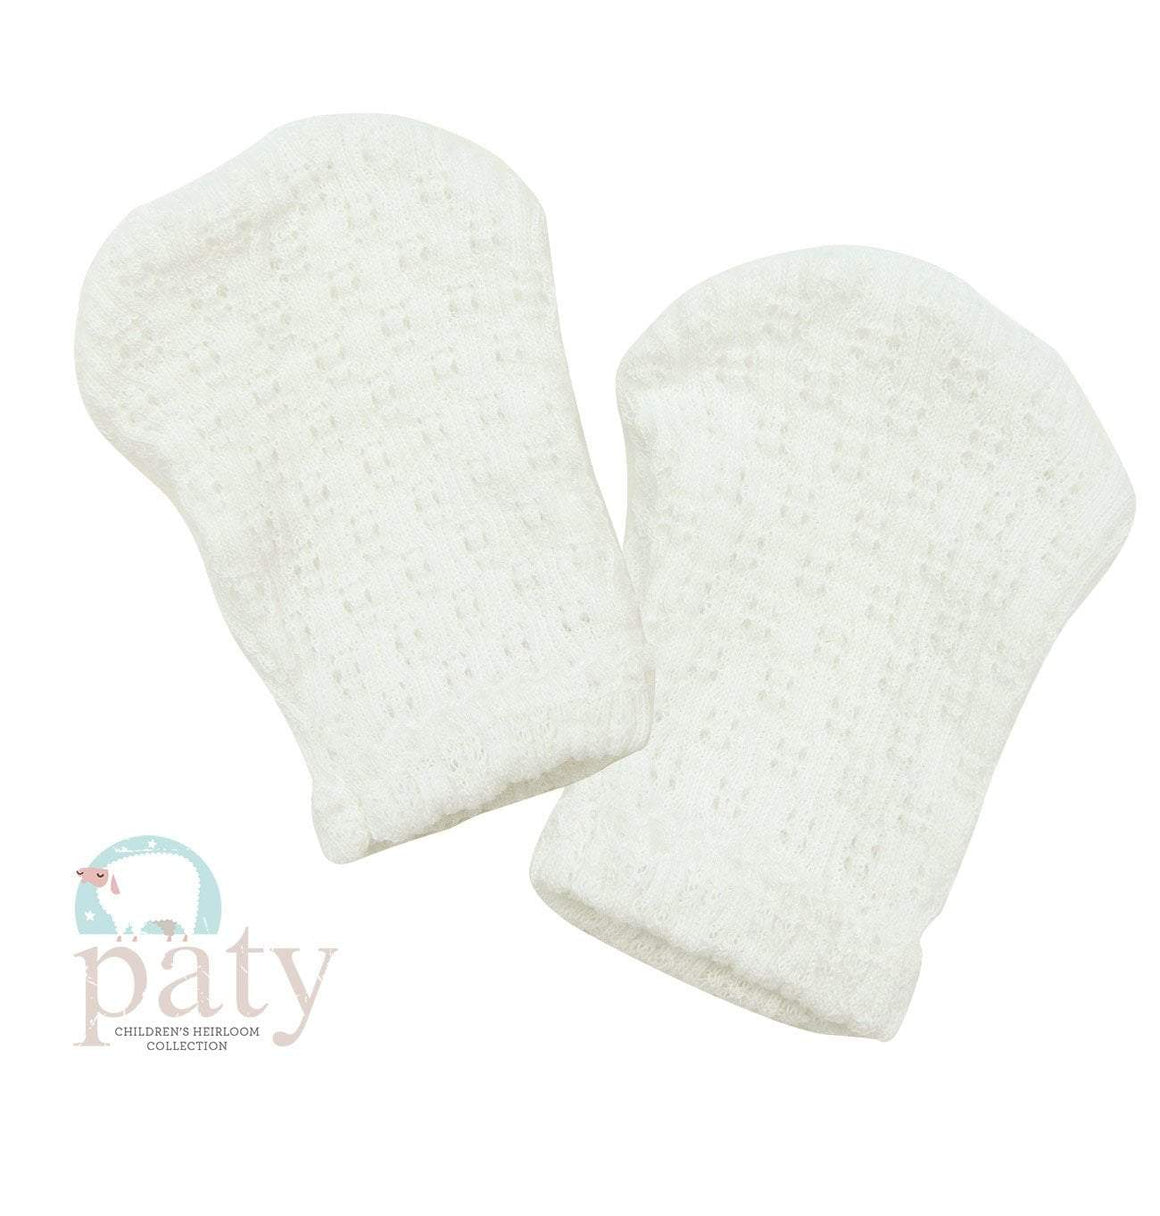 Paty Apparel Paty Inc Infant Baby Mittens